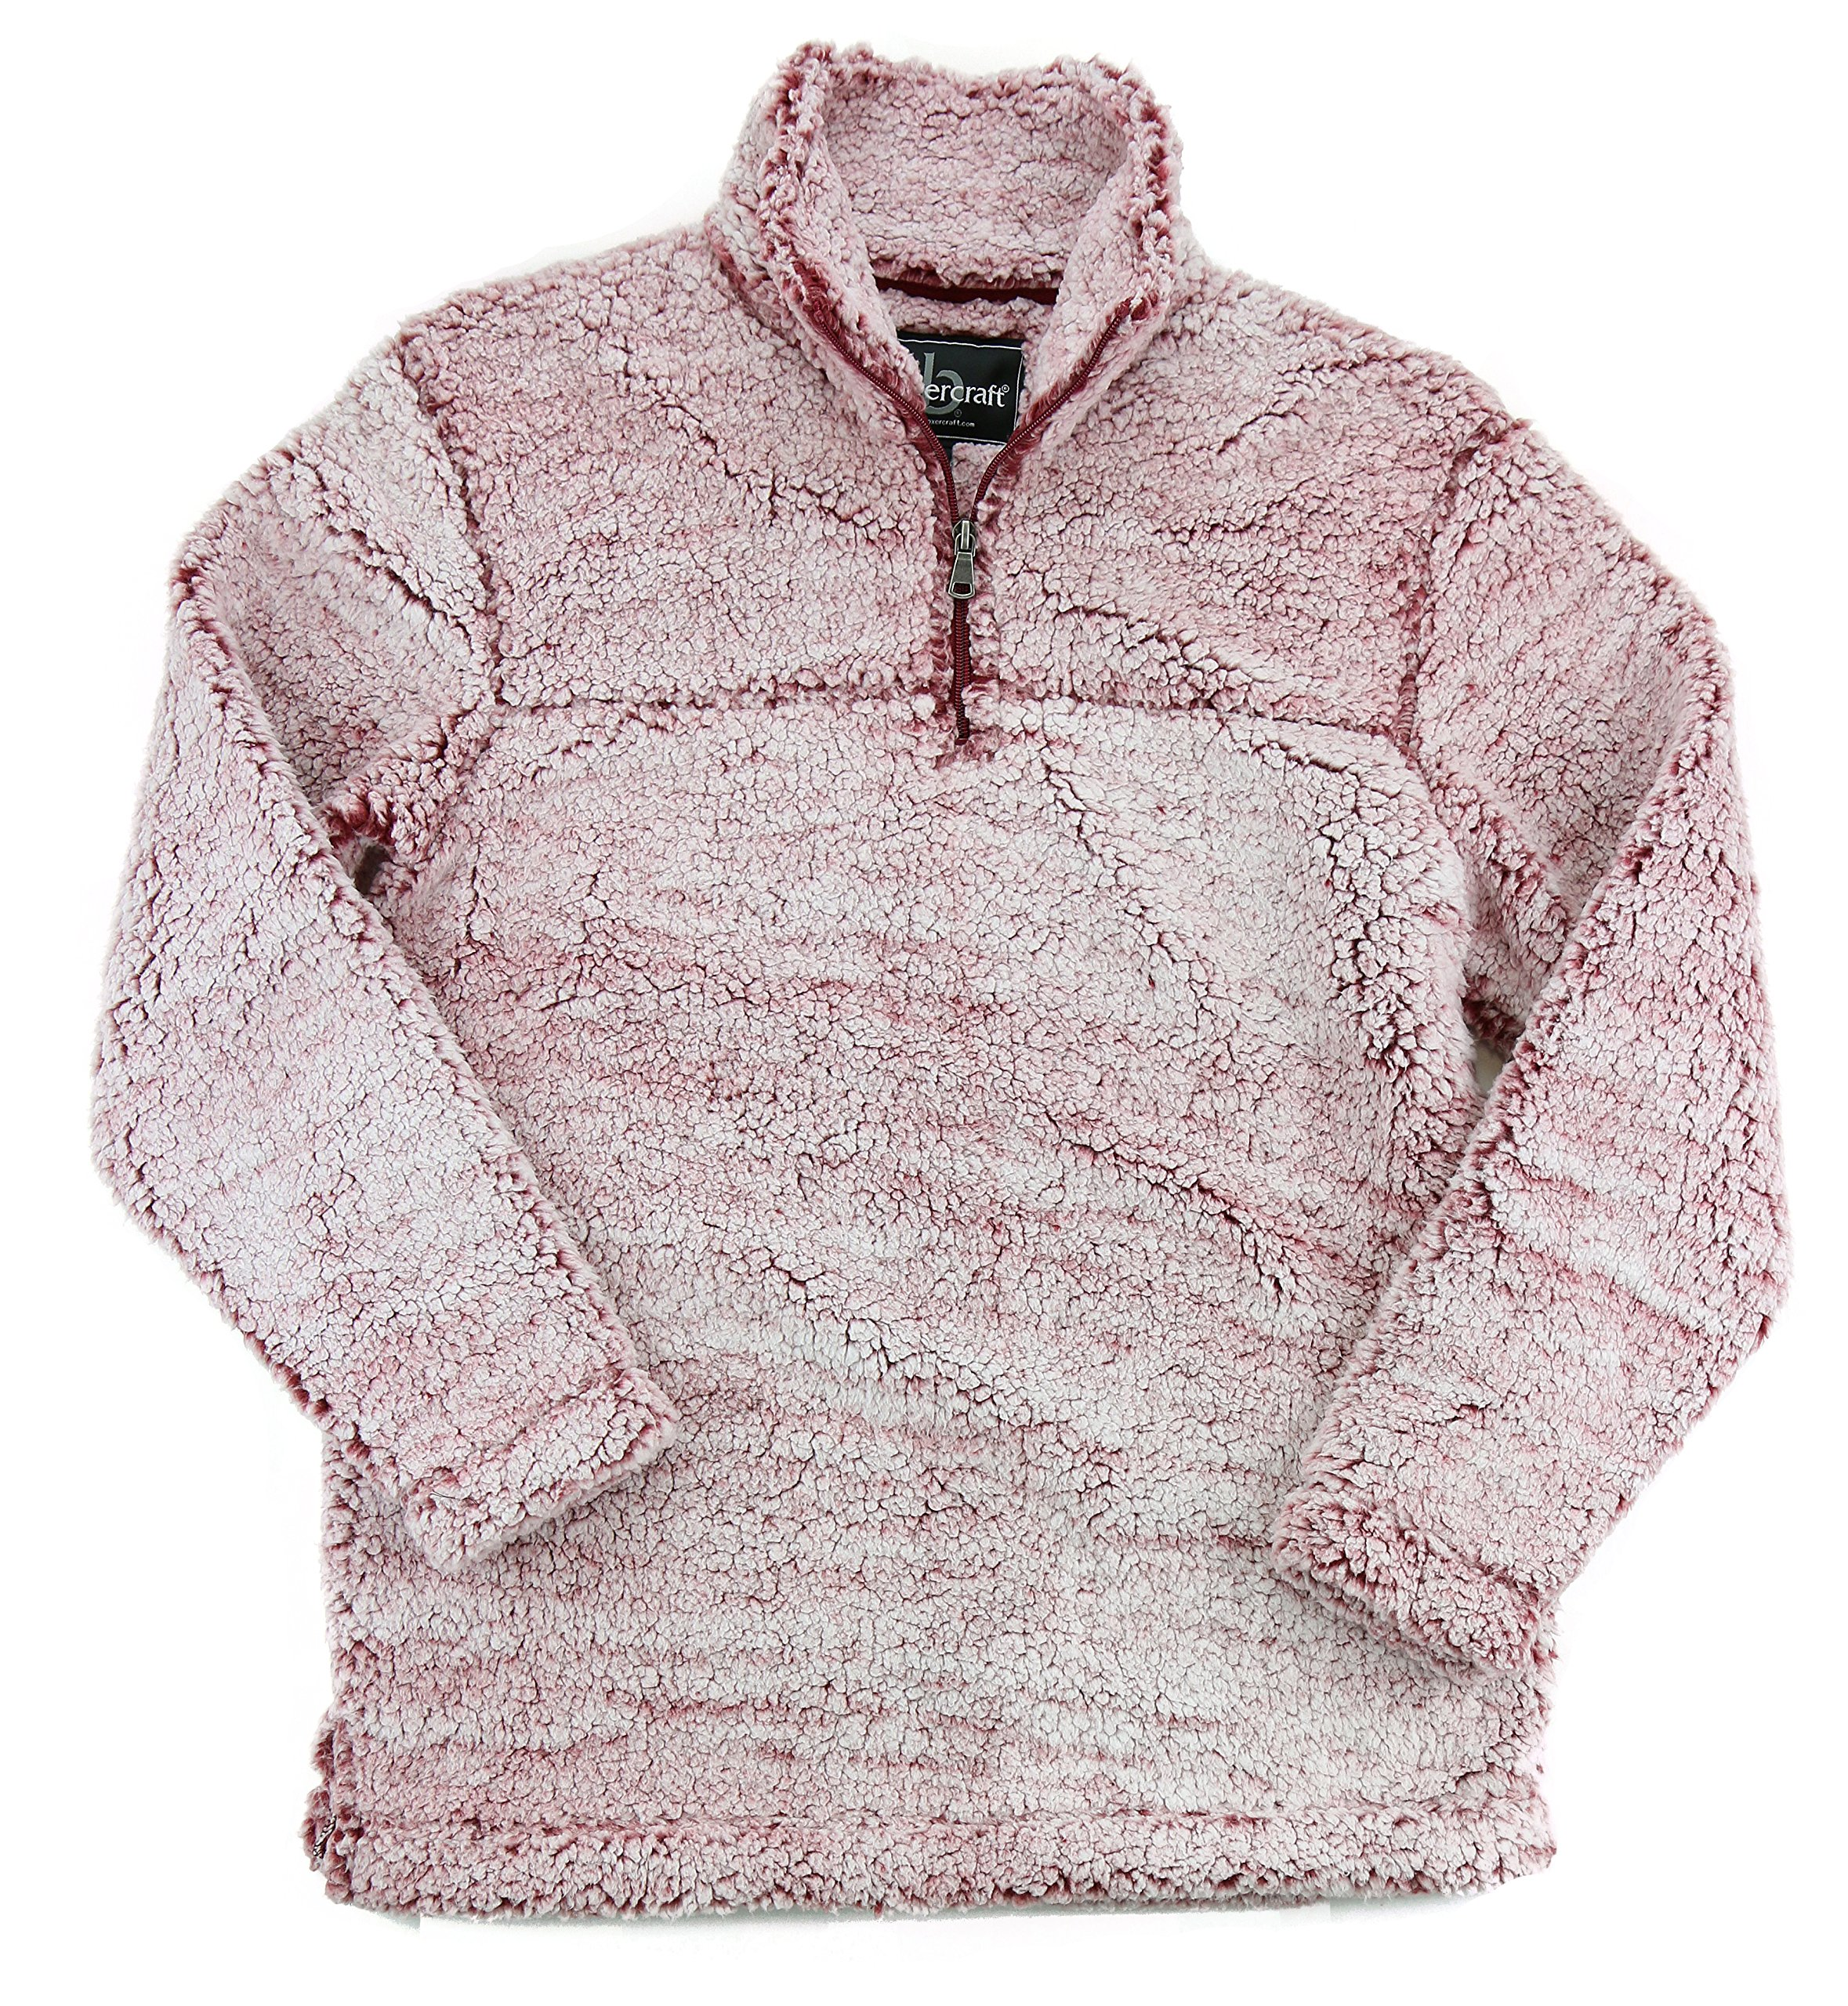 Boxercraft Adult Super Soft 1/4 Zip Sherpa Pullover (XX-Large, Snowy Garnet)